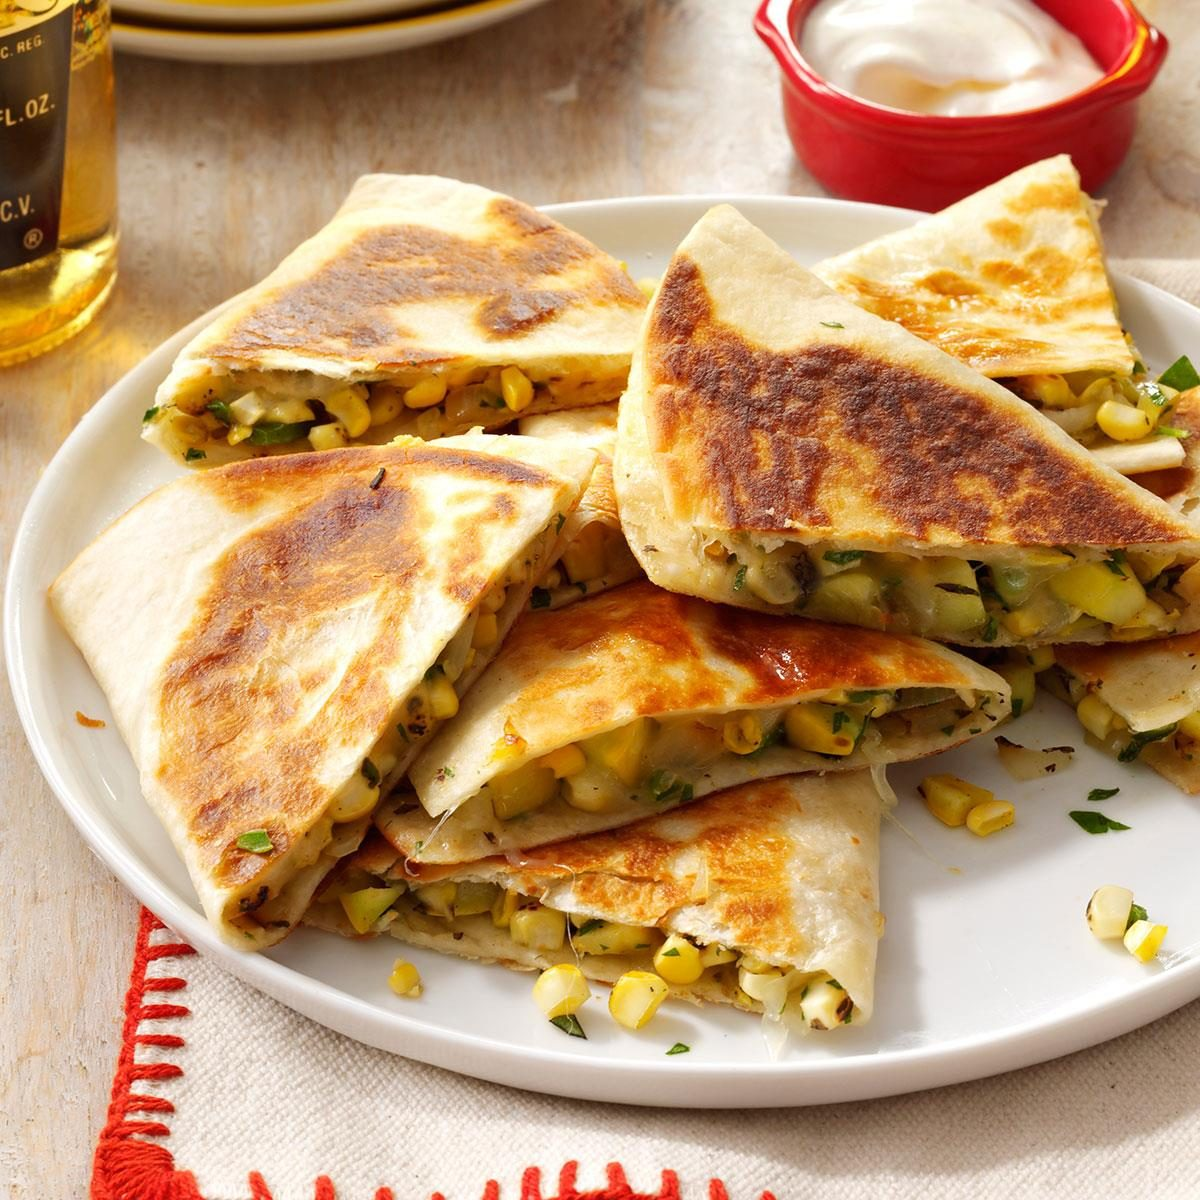 Corn 'n' Squash Quesadillas